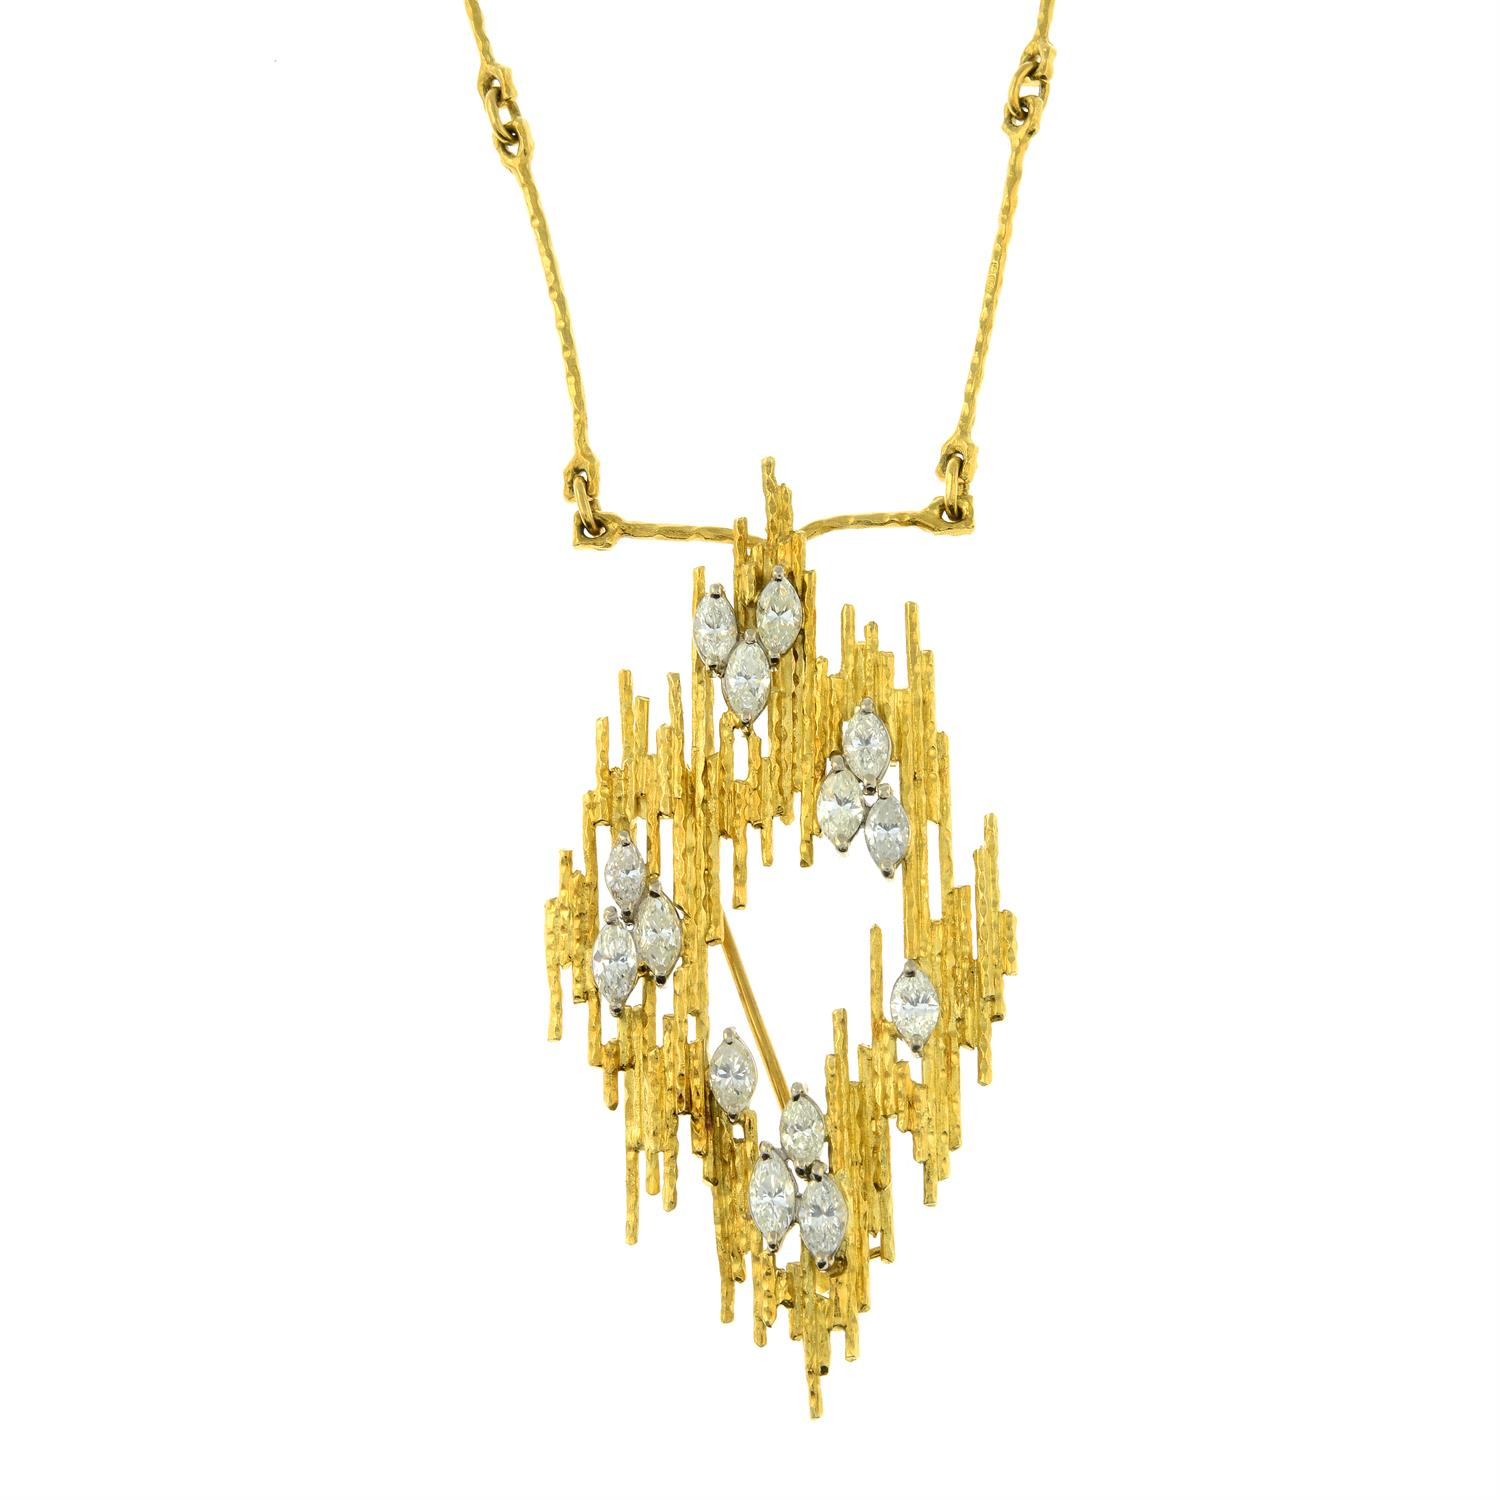 A 1970s 18ct gold marquise-shape diamond textured pendant brooch, with similarly-textured chain. - Image 2 of 5